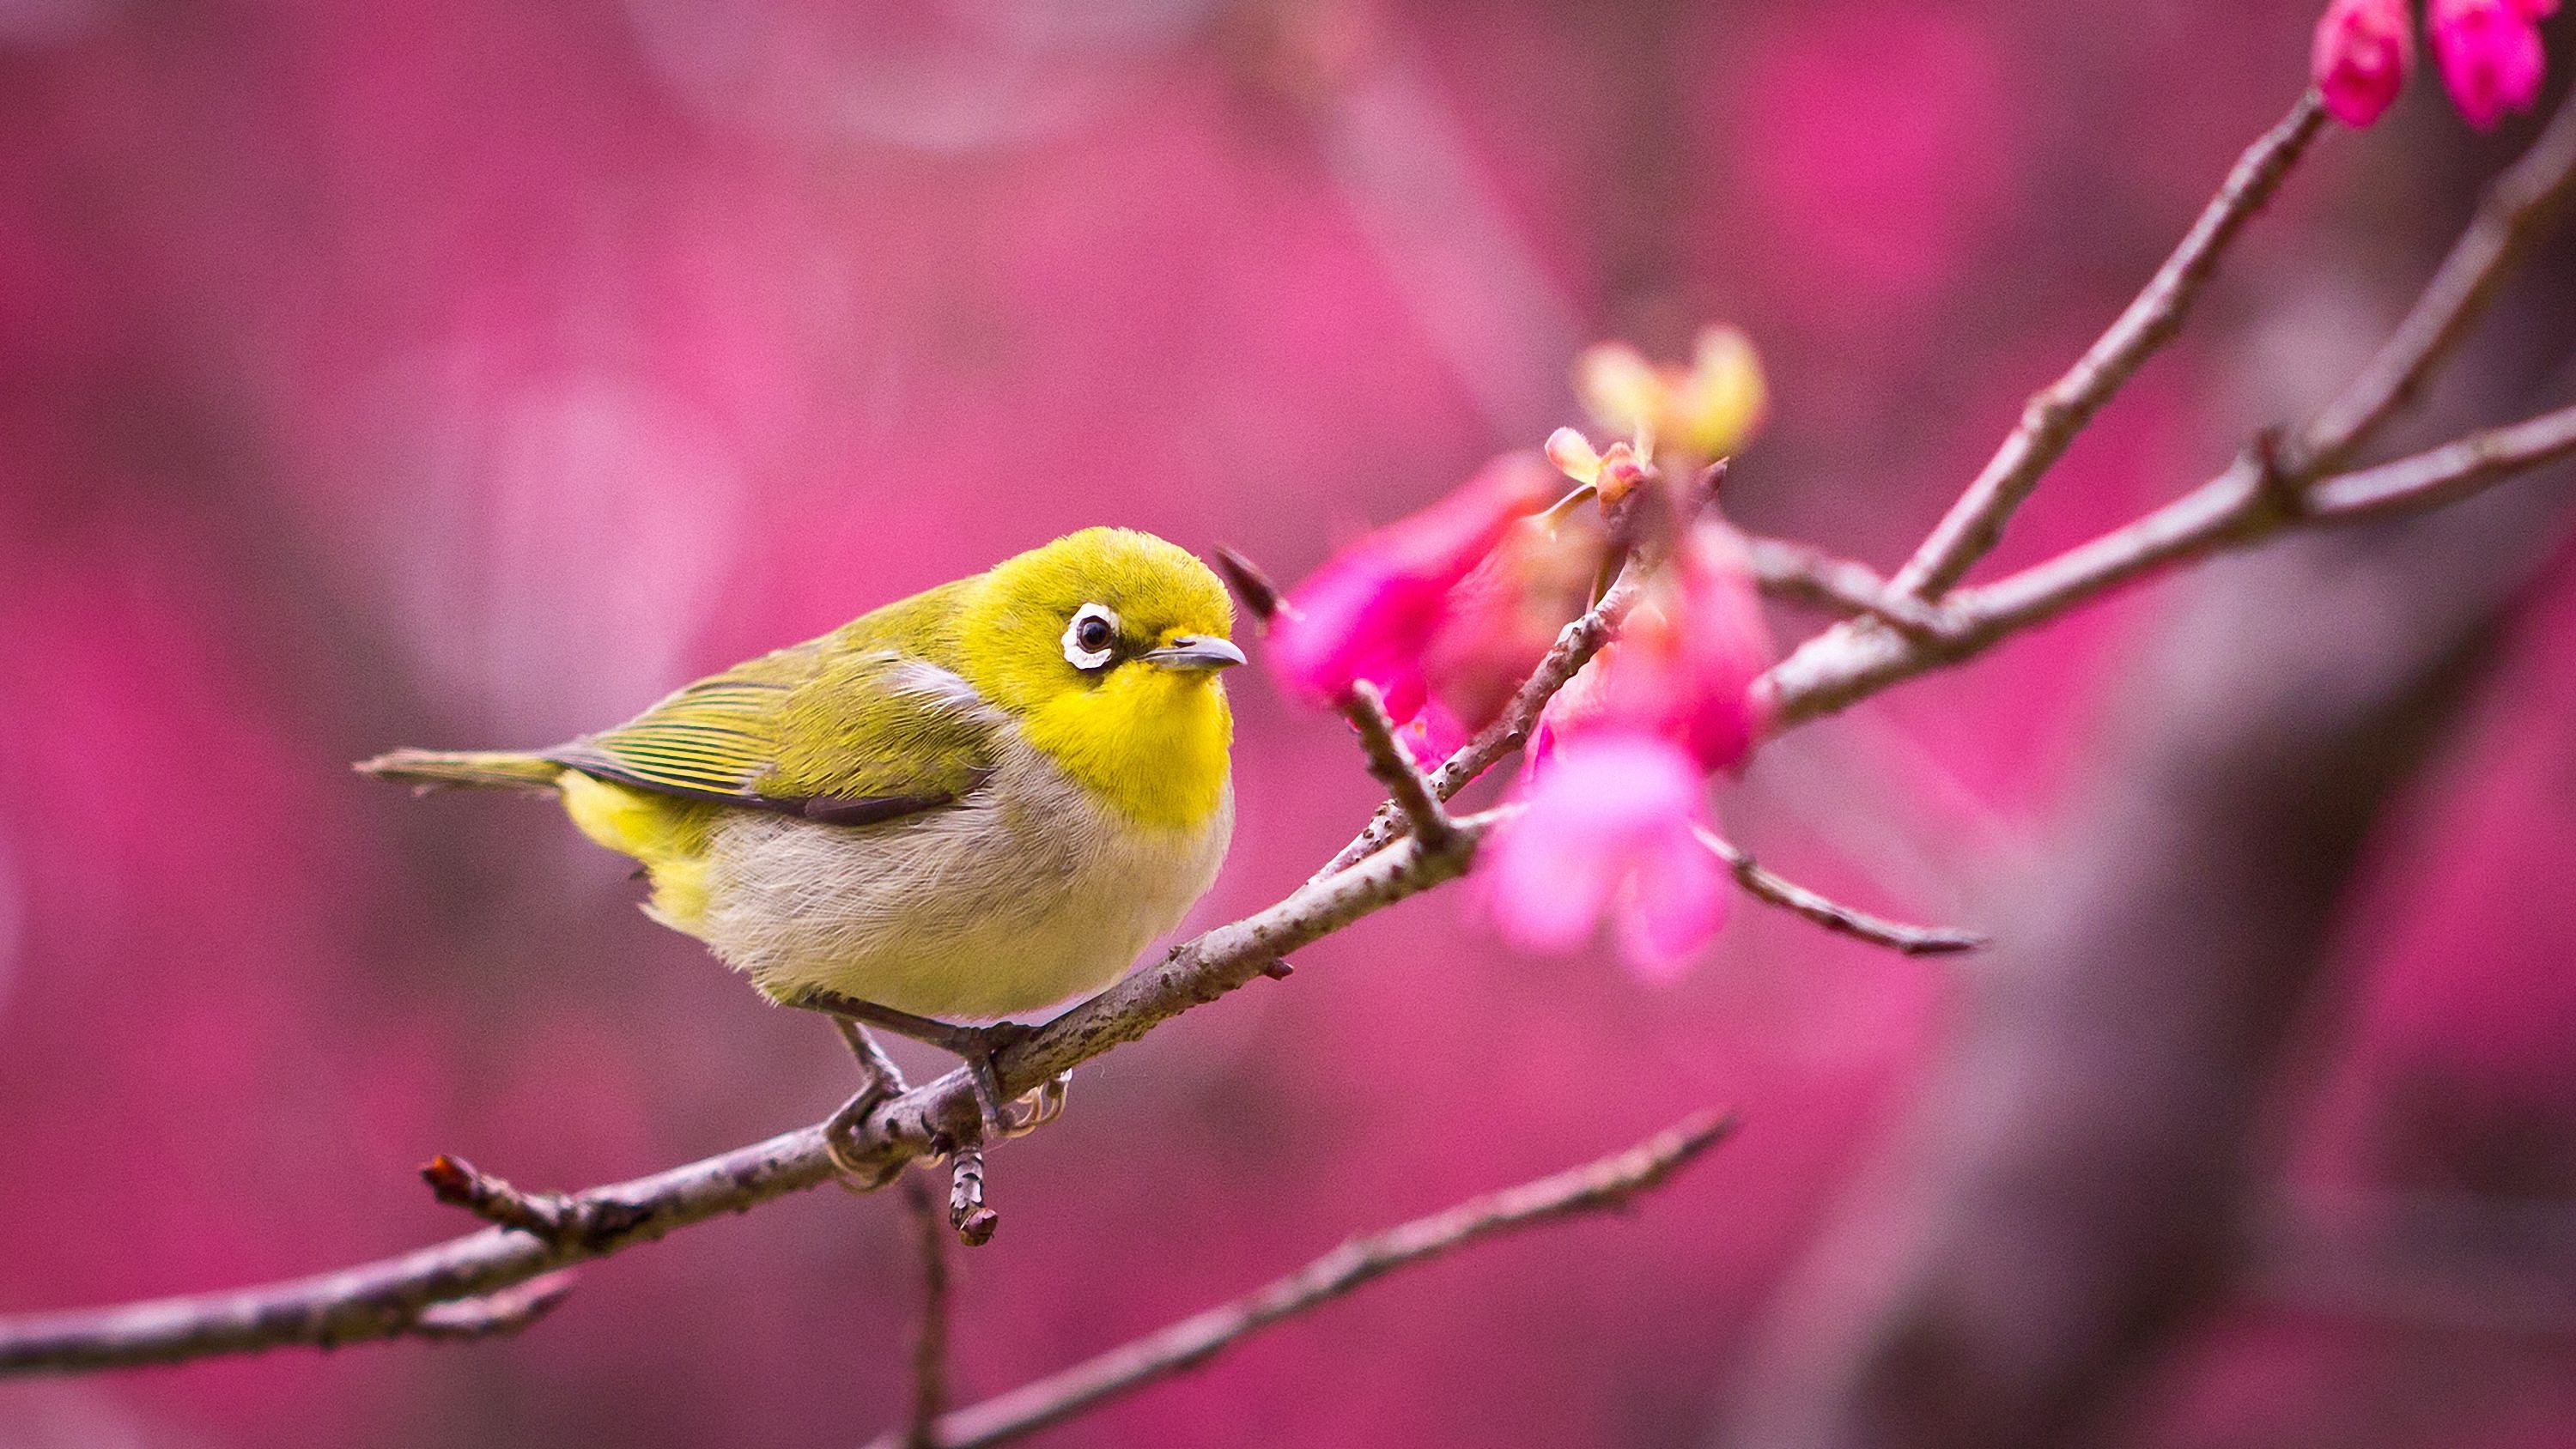 Cute bird wallpapers